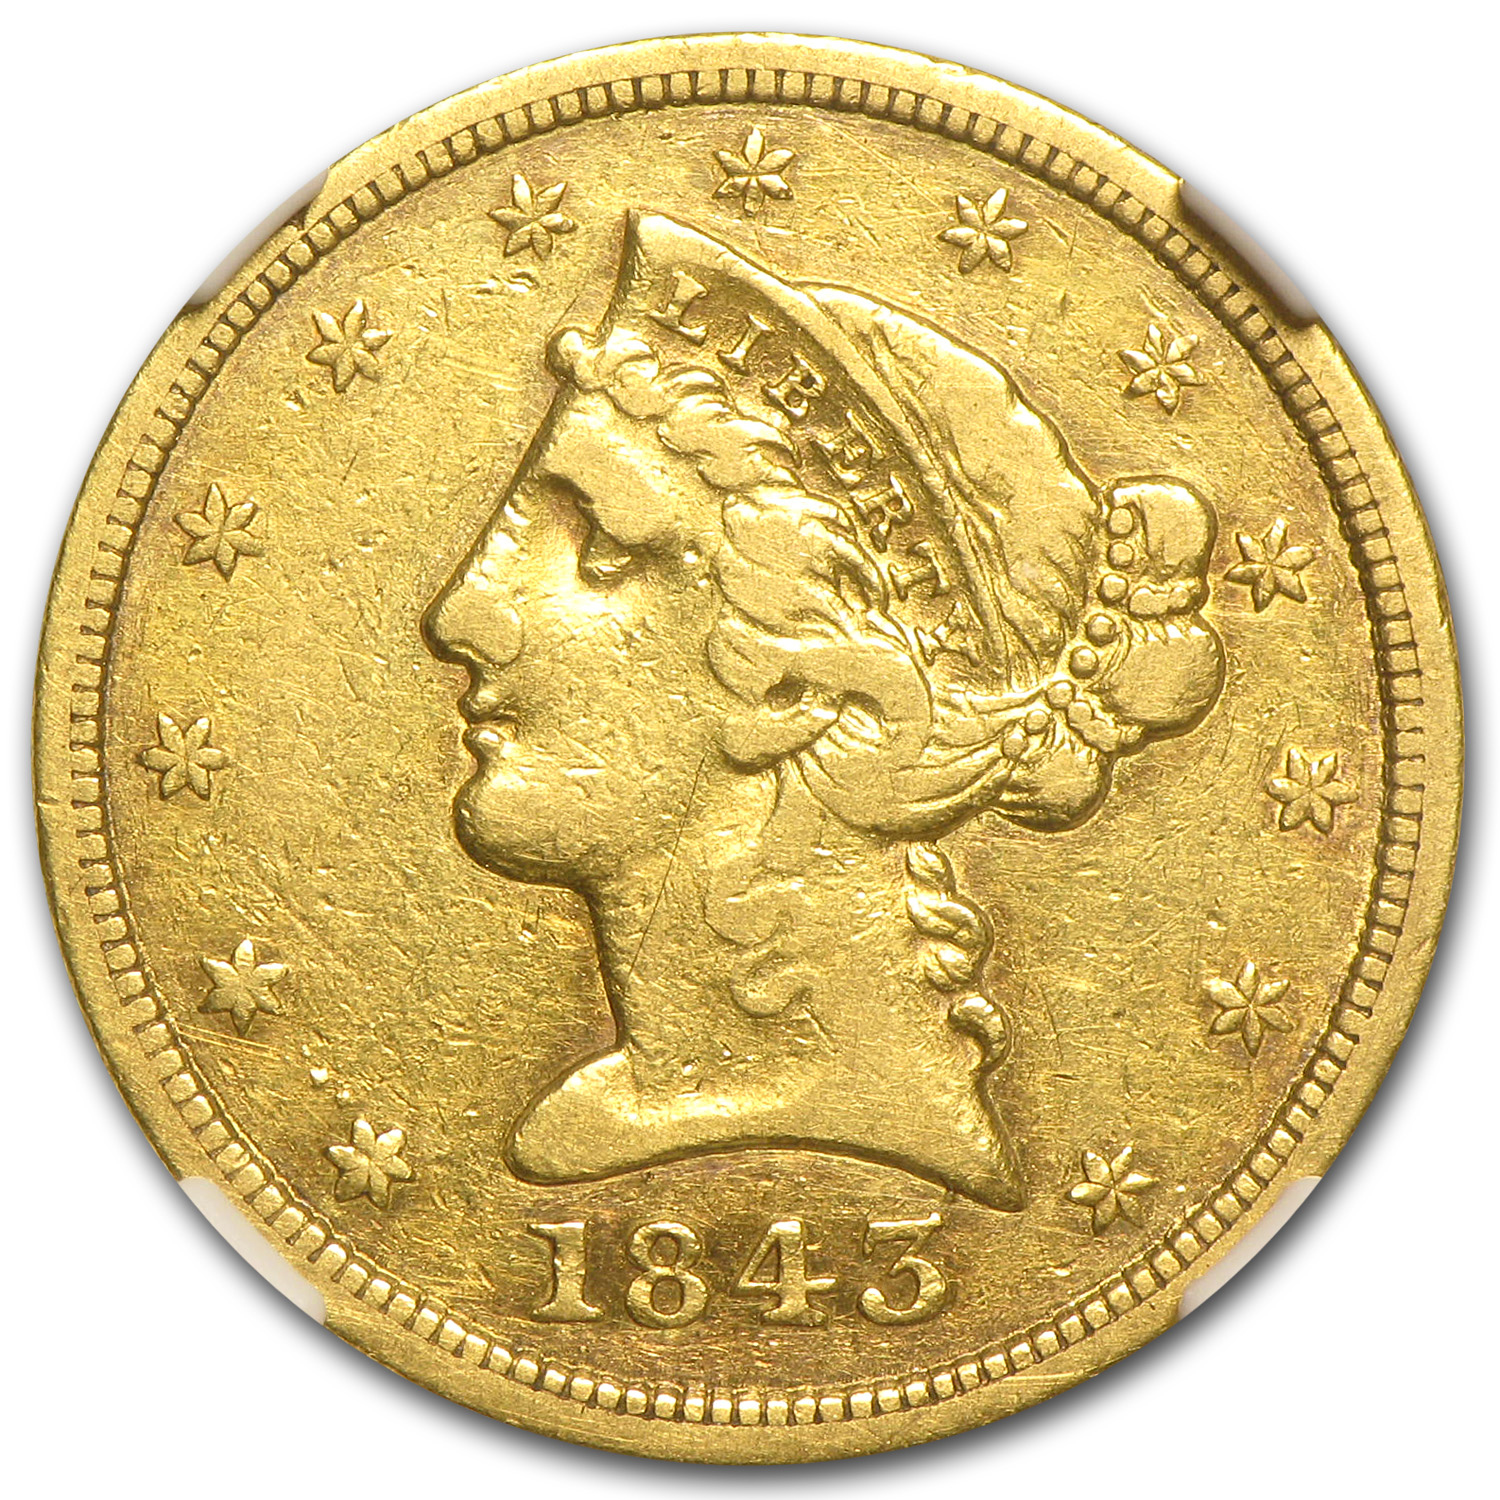 1843-D $5 Liberty Gold Half Eagle - VF Details (Graffiti) - NGC